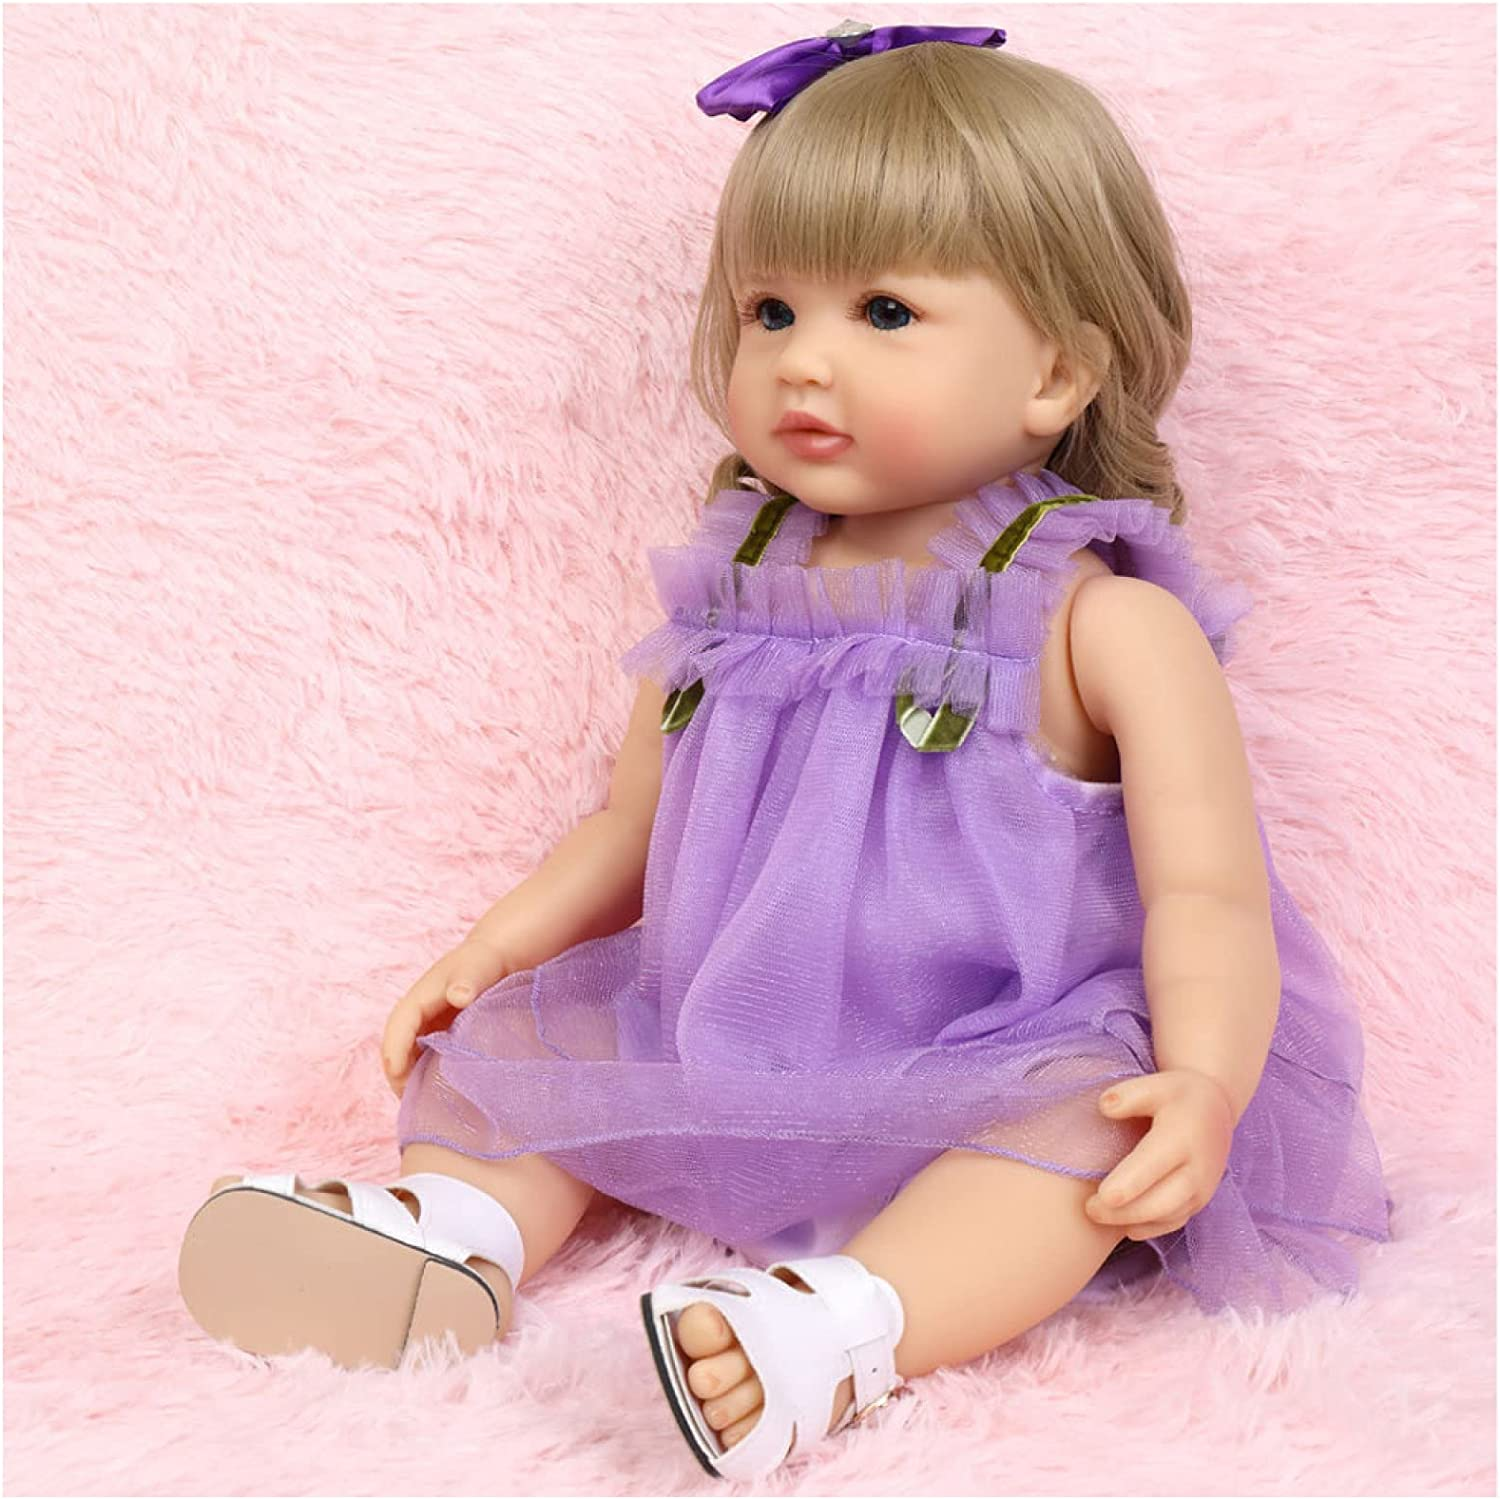 YANRU Special price for a limited time Silicone Award Reborn Doll - Girl Toddler 22in Look Real